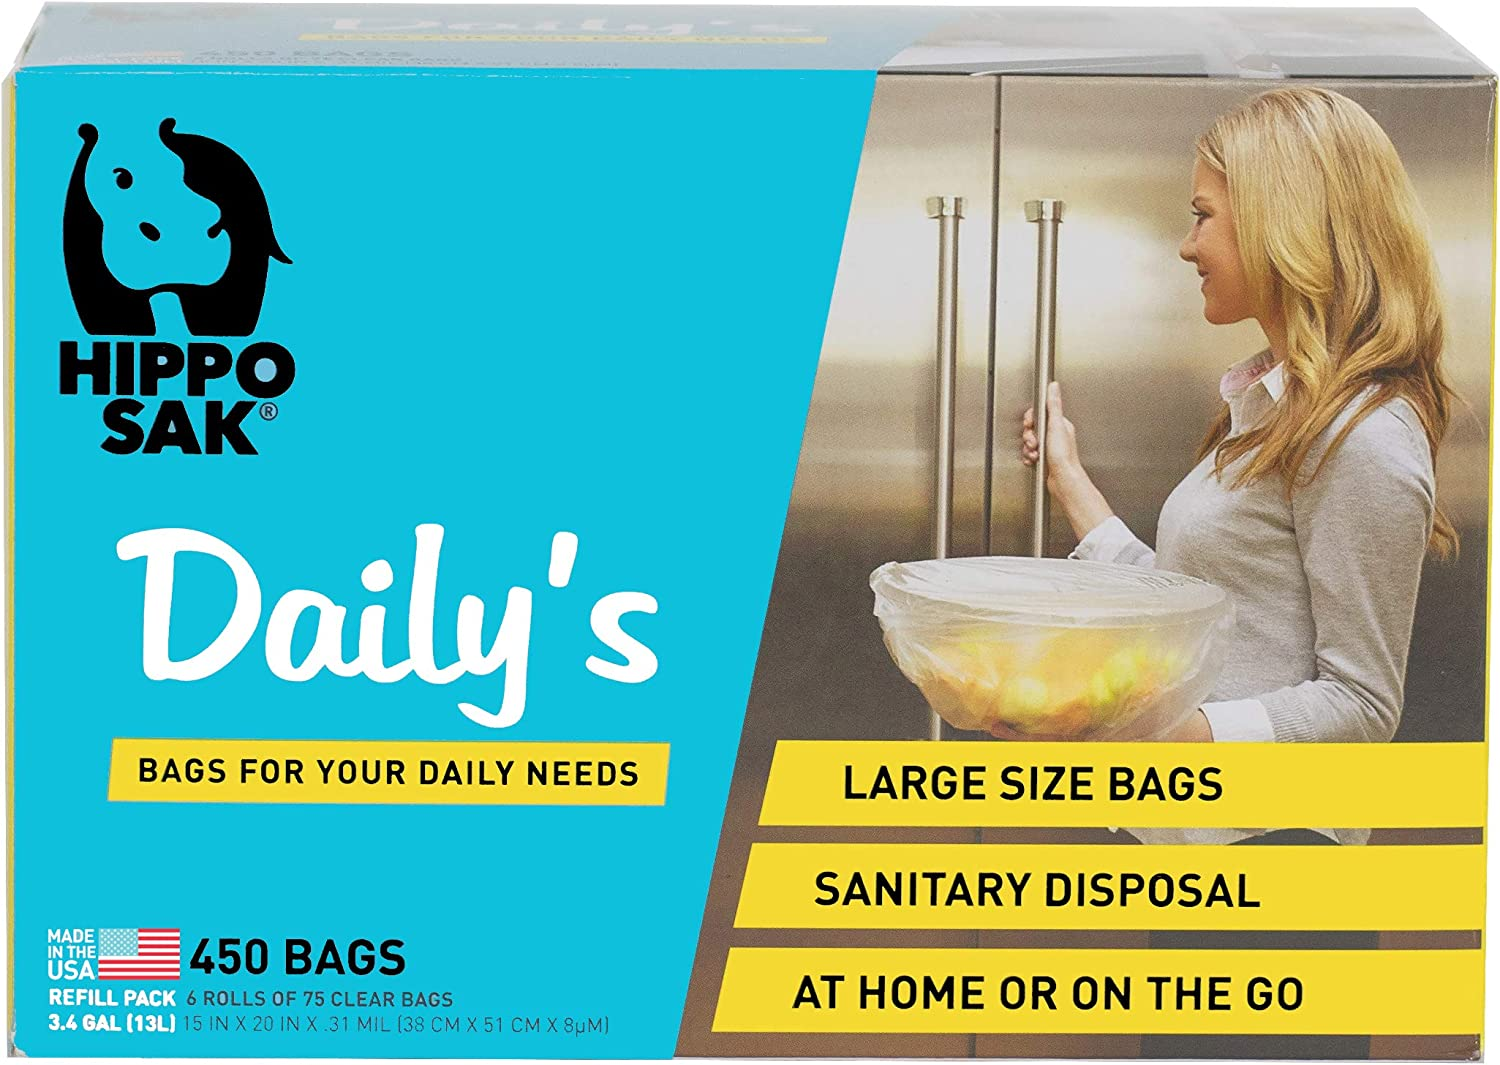 Hippo Sak Daily's Storage and Disposal Bags Refill (450 Count), Clear Bags